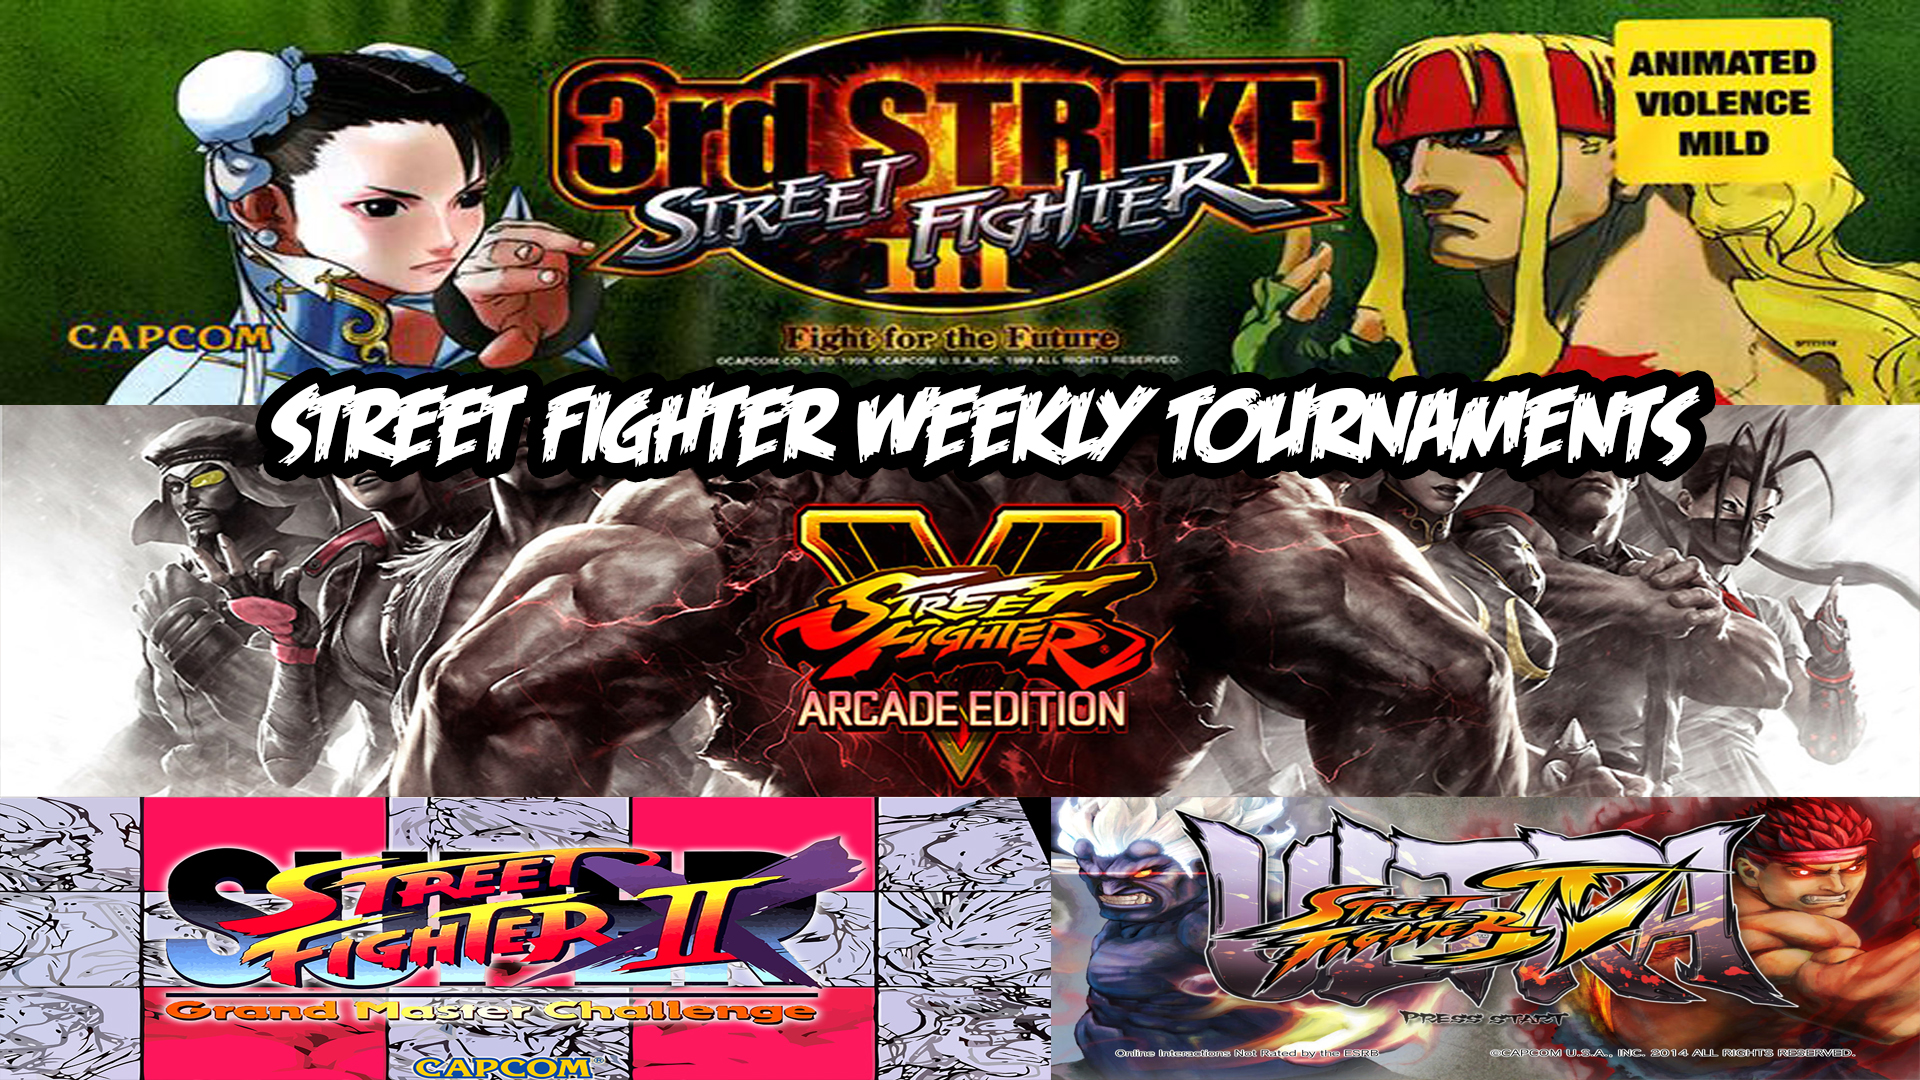 Street Fighter Weekly Meet Up — Akihabara Arcade